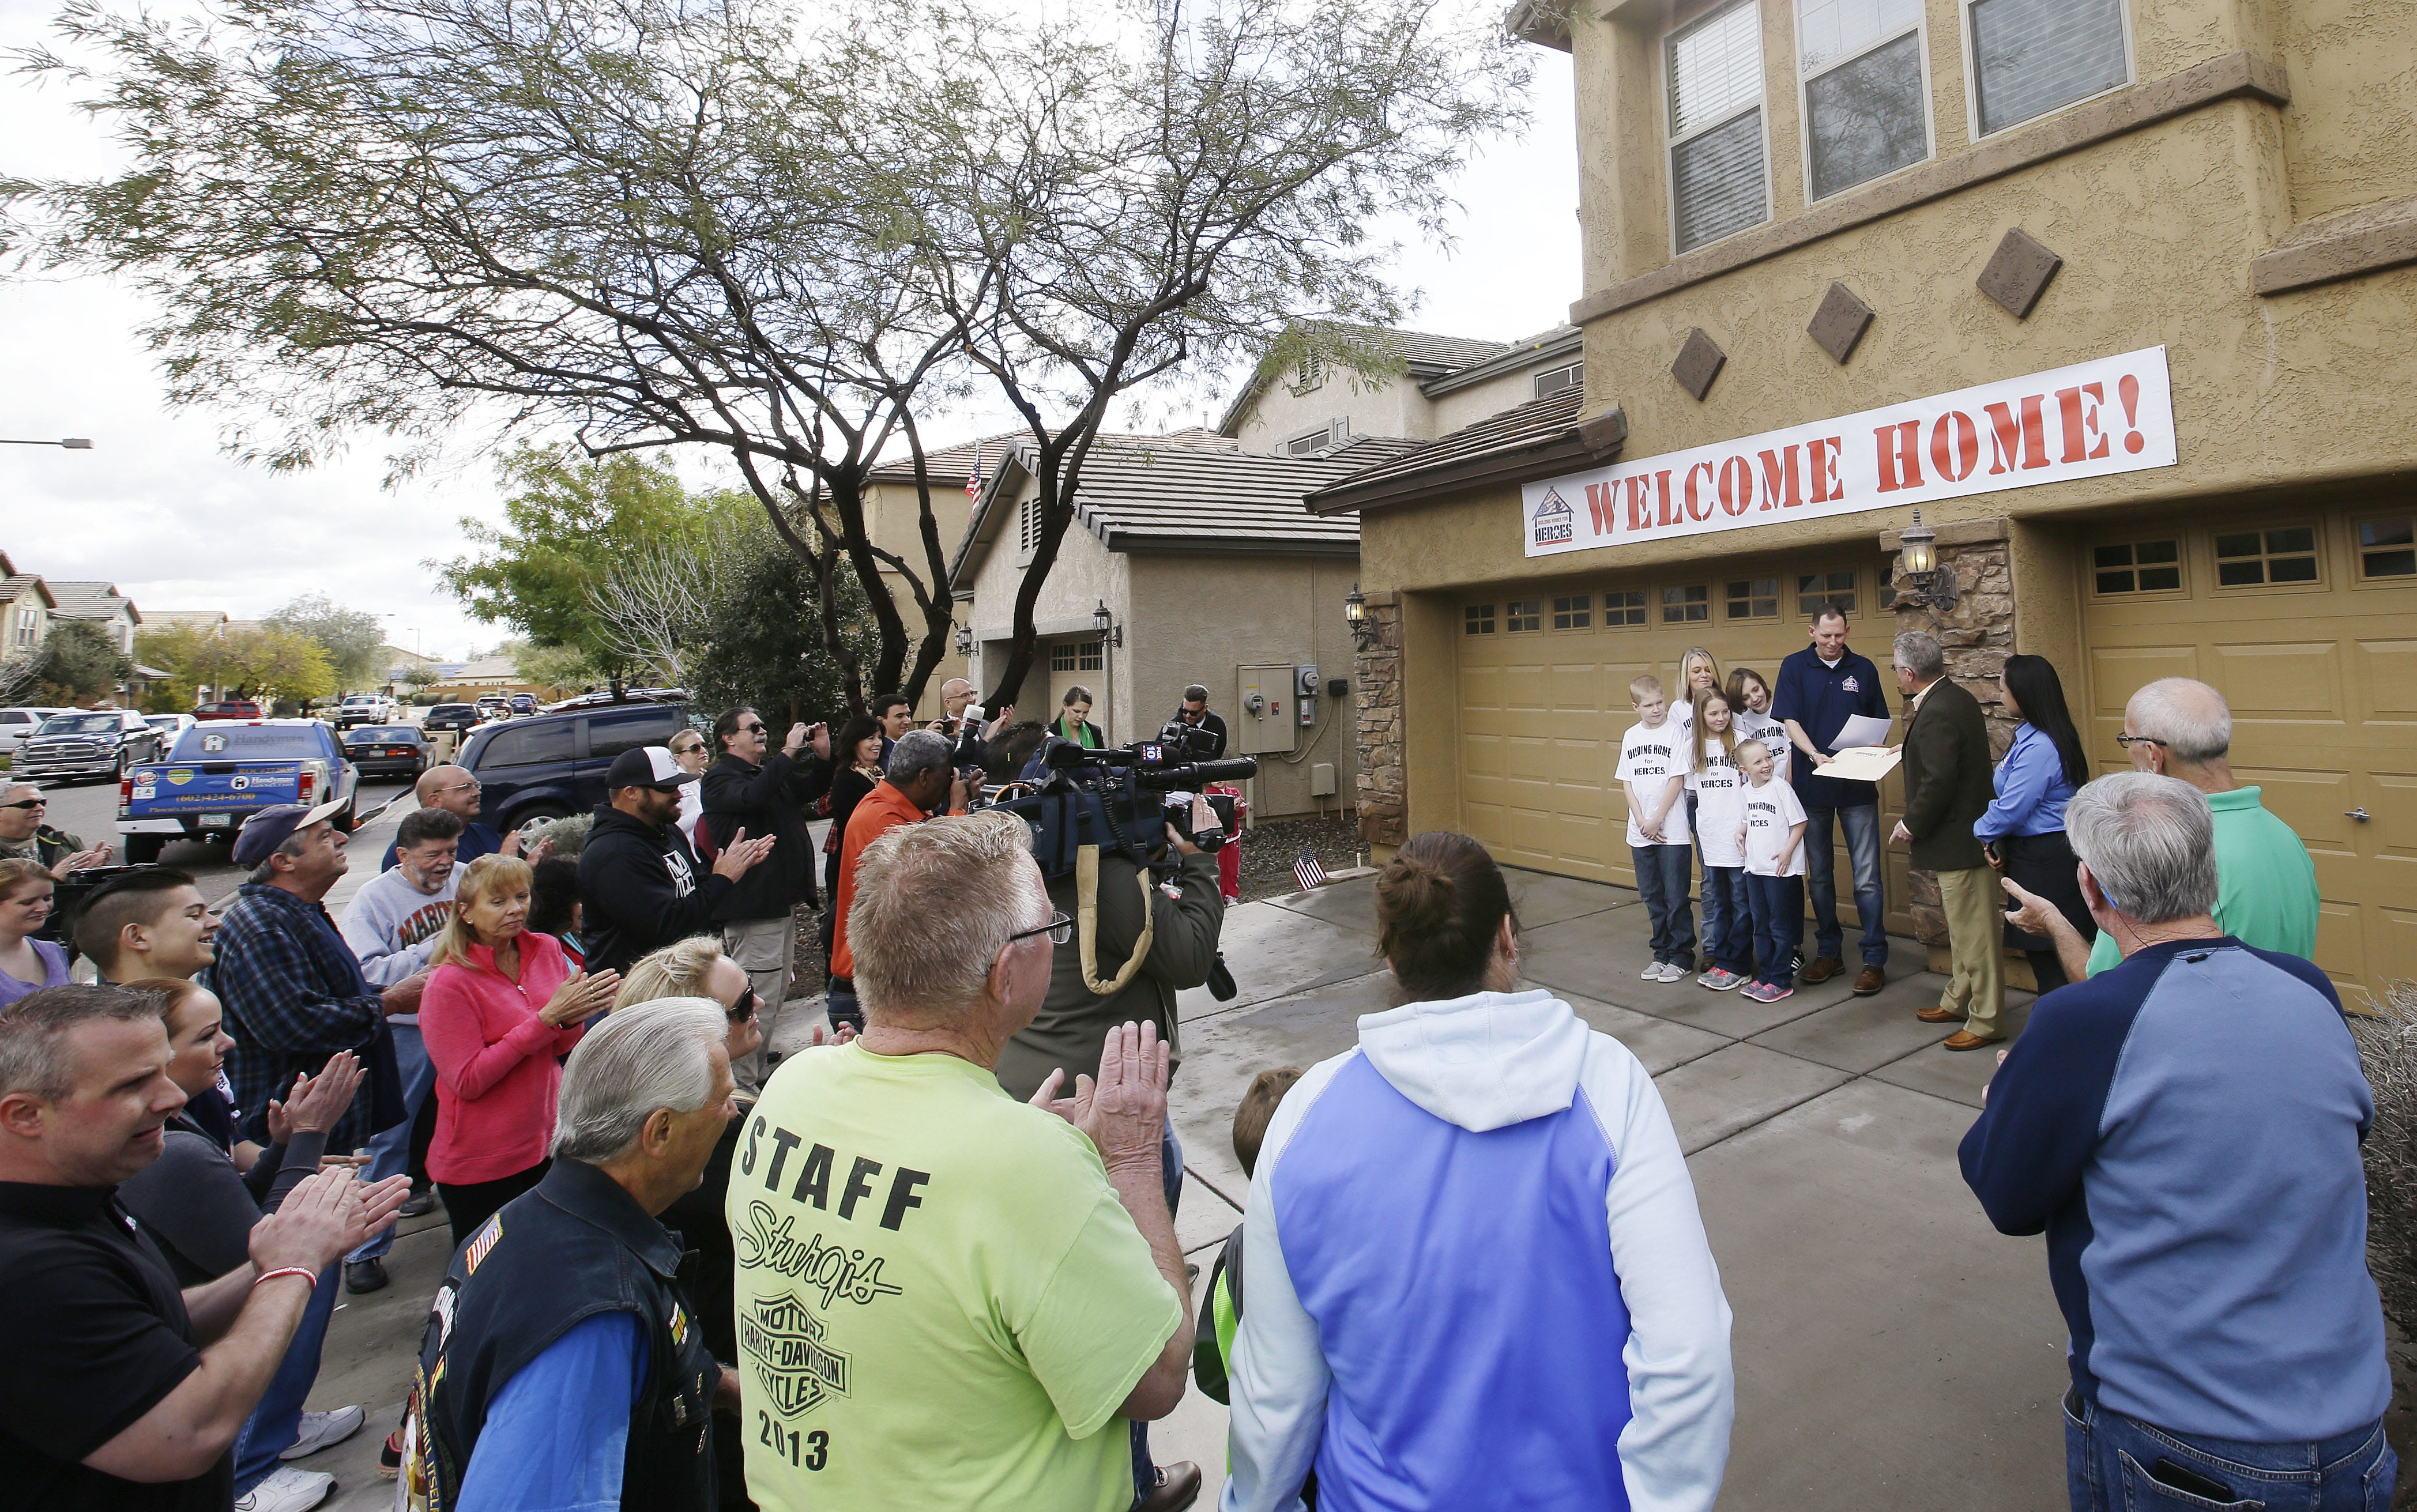 Home at last: Gift brings tears, joy to wounded veteran